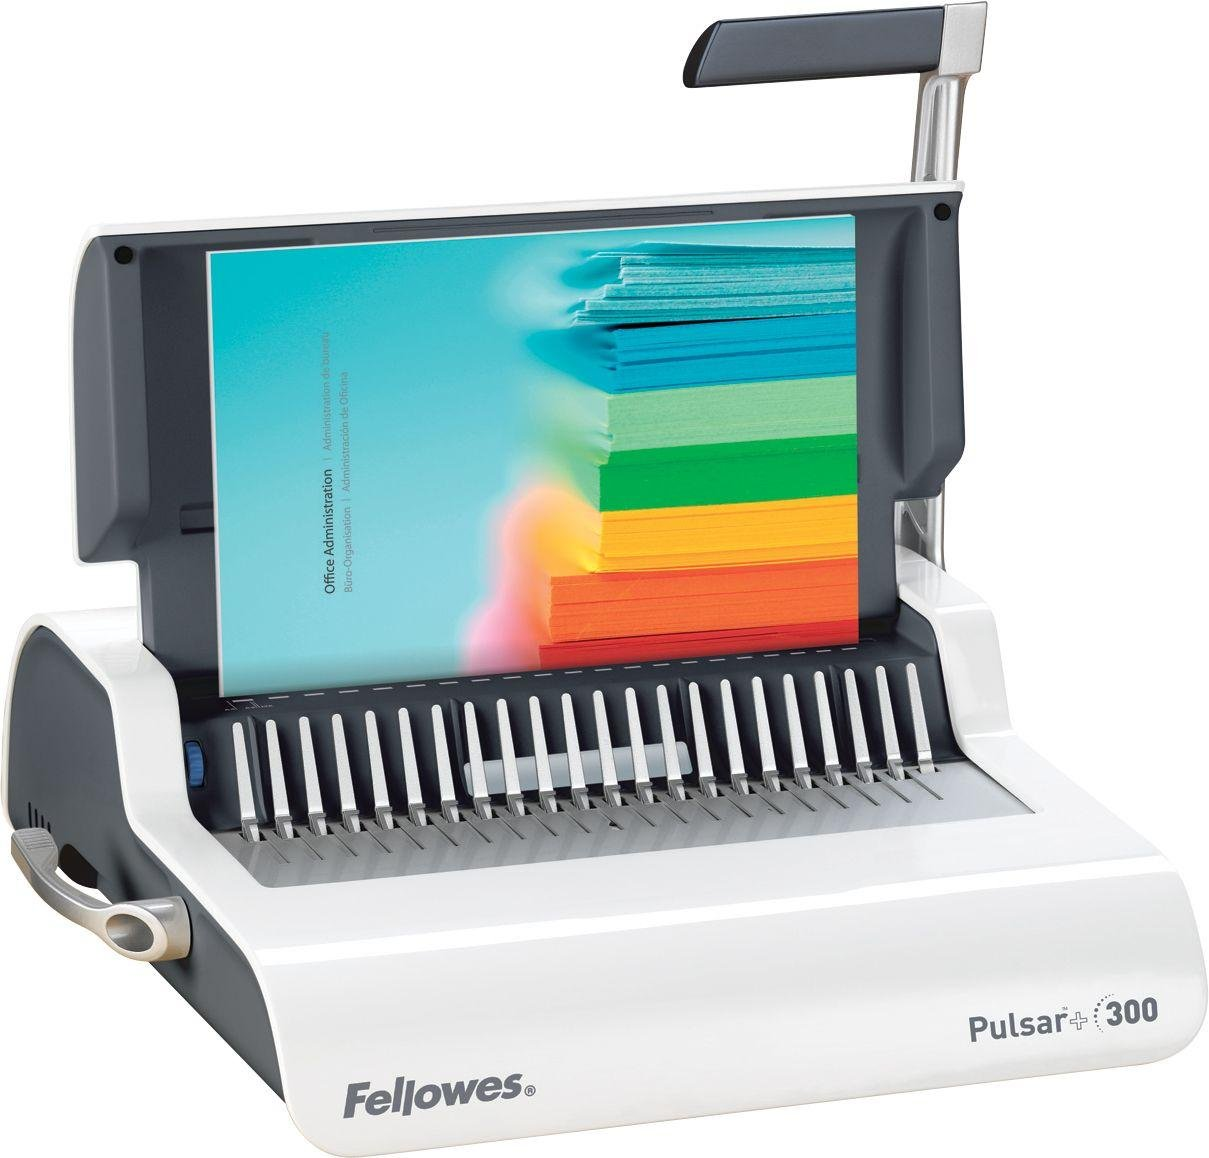 Image of Fellowes Pulsar+ A4 Comb Binder